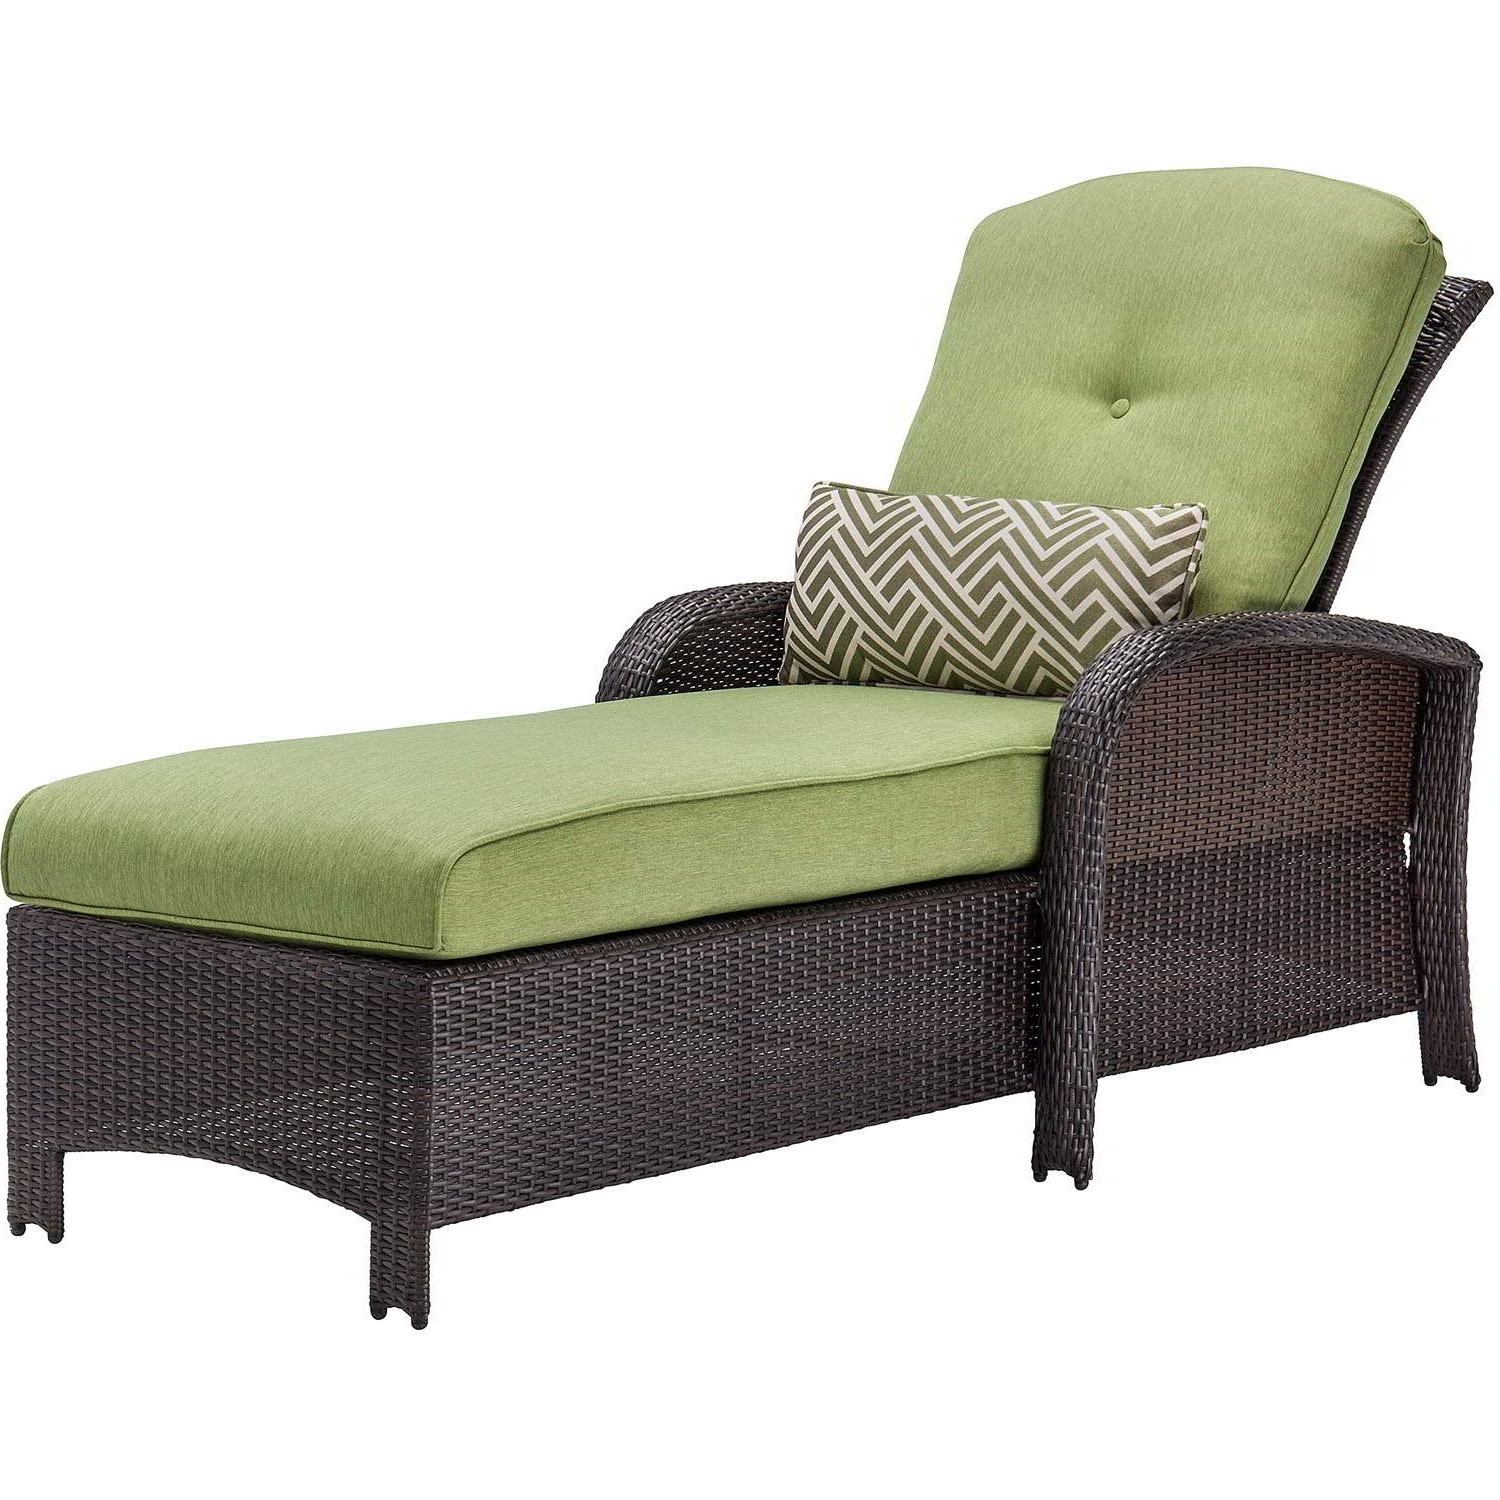 Green Chaise Lounge Chairs With Regard To Well Liked Strathmere Luxury Chaise In Cilantro Green – Strathchs (View 5 of 15)